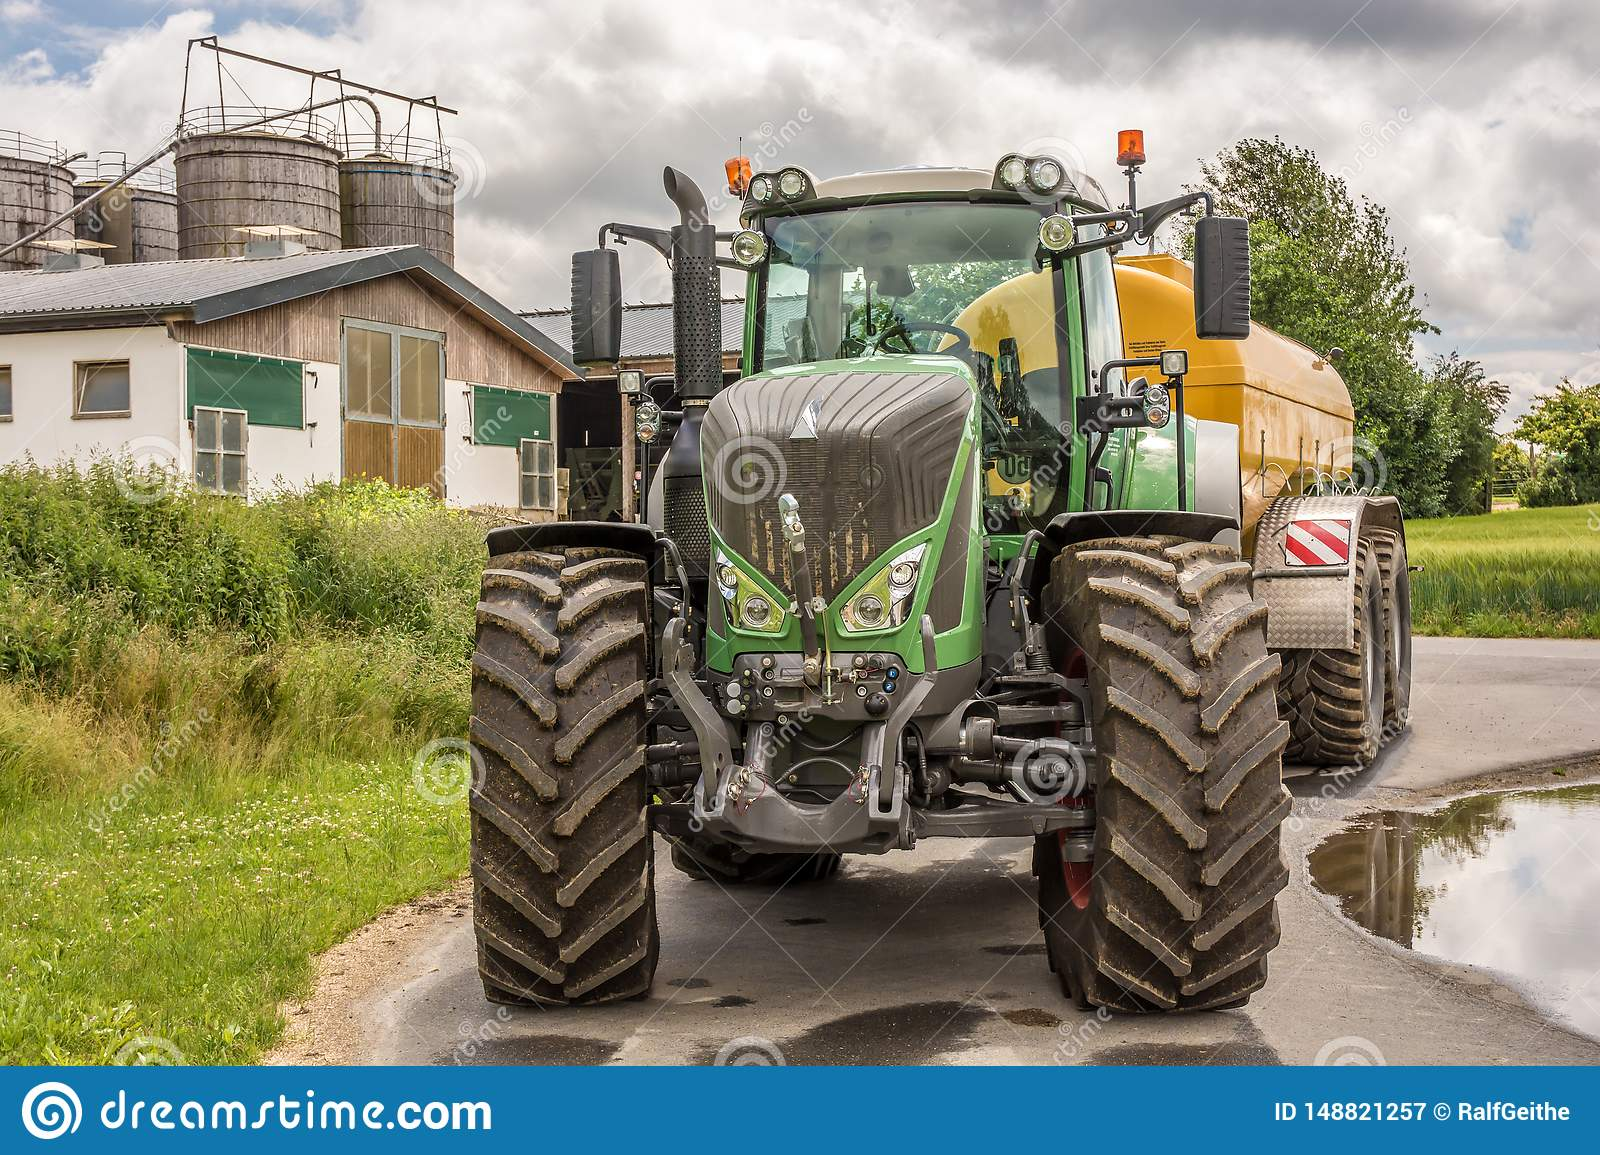 Big hefty tractor with farm in the background